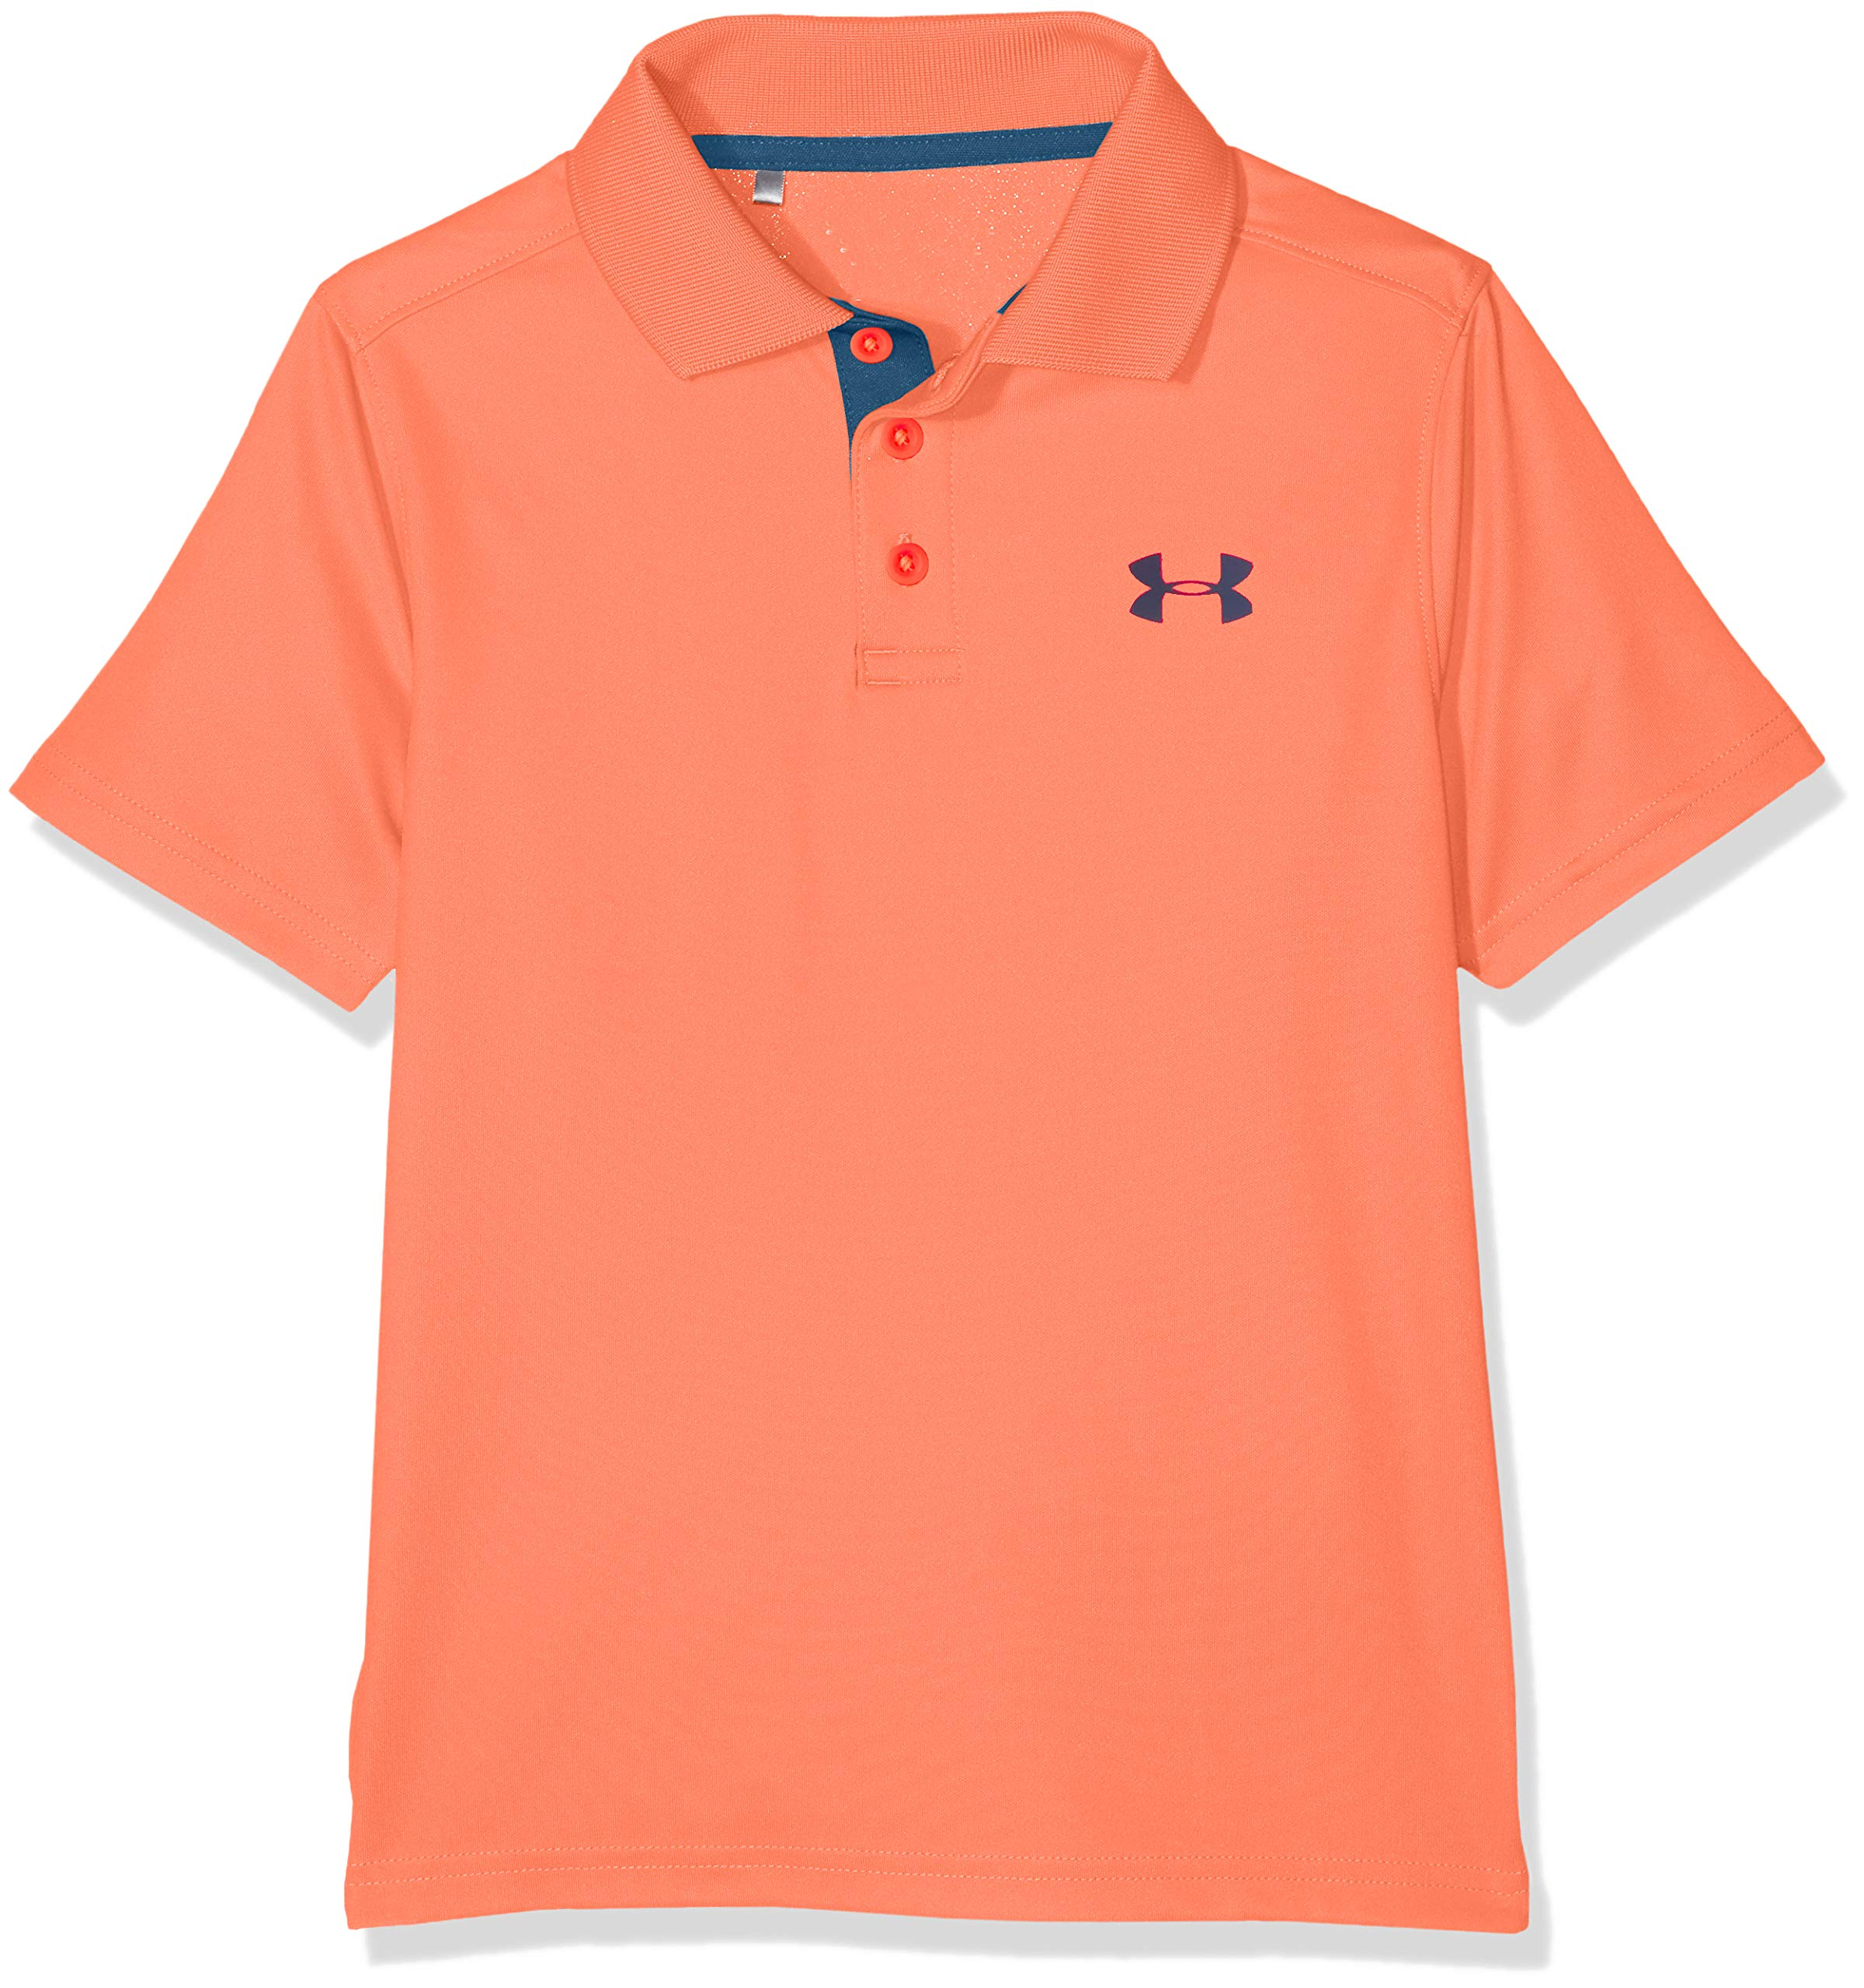 Under Armour Boys' Performance Polo, After Burn (877)/Techno Teal, Youth Small